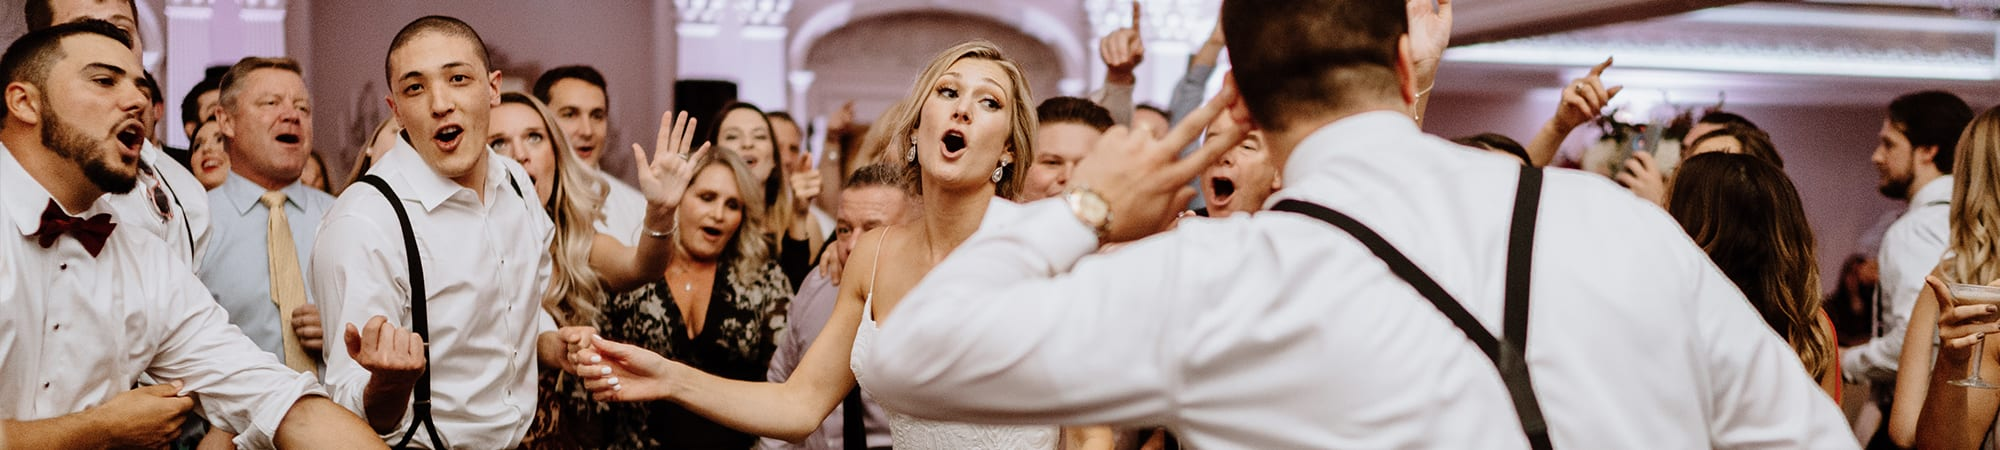 Woman dancing and singing at wedding | Elegant Music Group - EMG